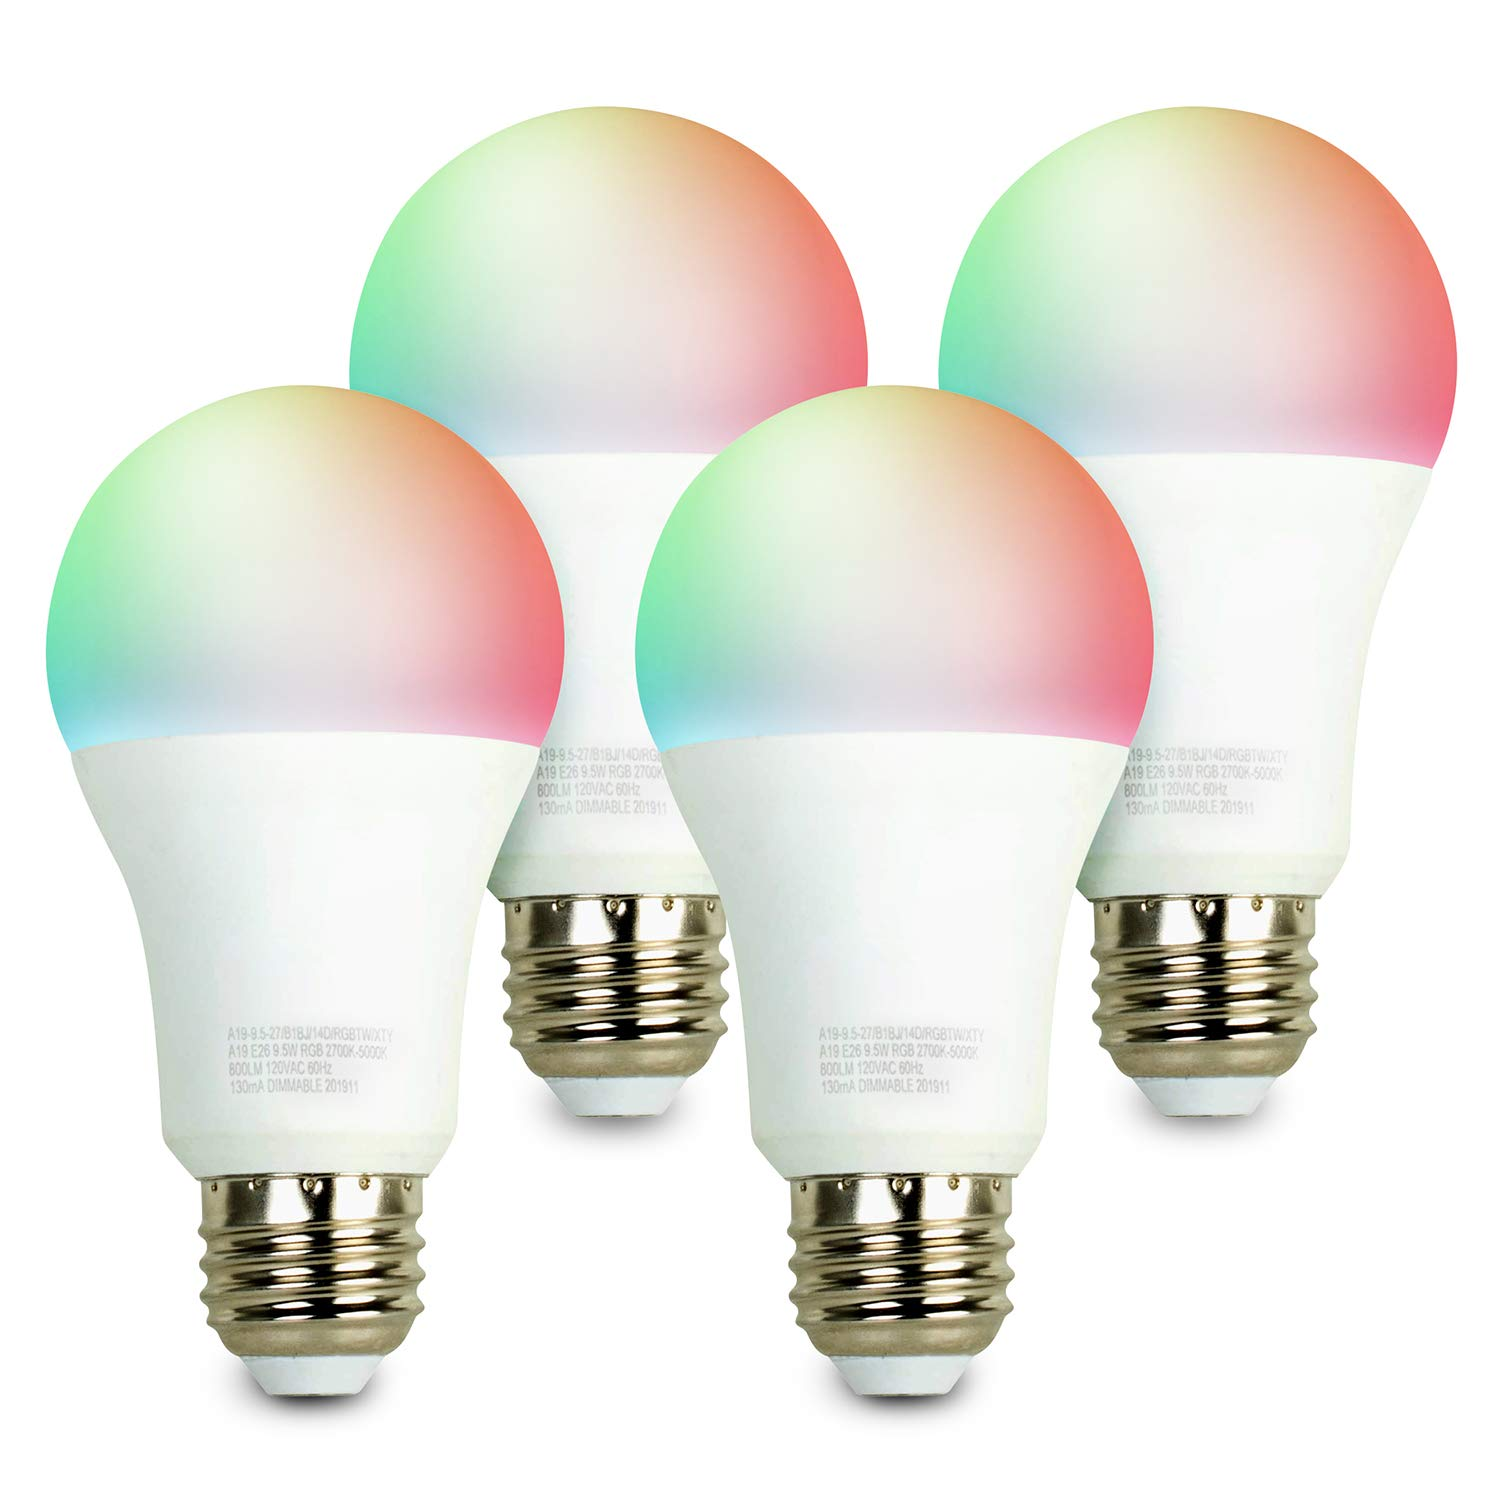 iBRIGHT Smart WiFi LED Light Bulb, 9.5W (60W Equivalent) 800 lumens A19 E26 Dimmable Multicolor 120VAC 2700K-5000K RGB, No Hub Required (Works with Amazon Alexa & Google Assistant) 4 Pack